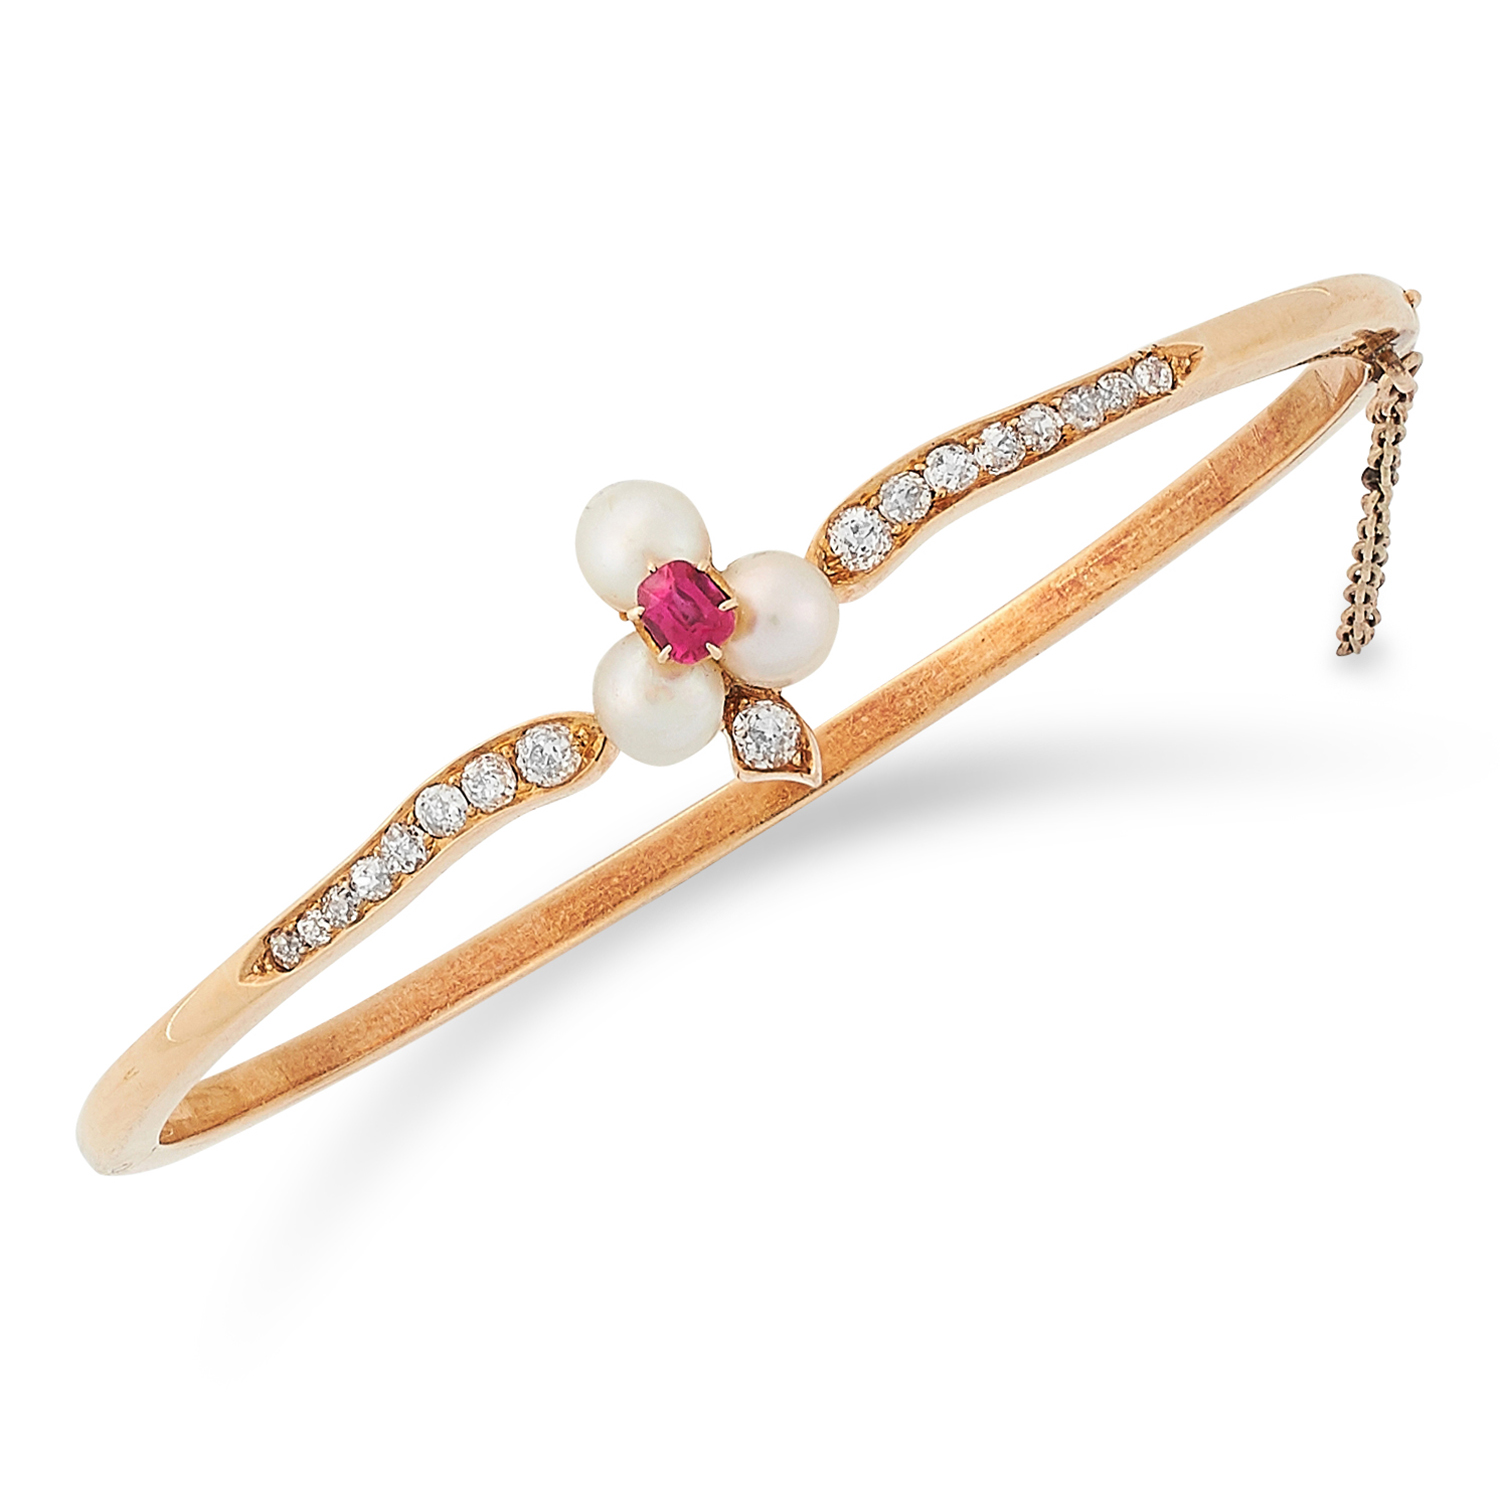 RUBY, DIAMOND AND PEARL BANGLE set with pearls, cushion cut ruby and round cut diamonds, 6cm inner